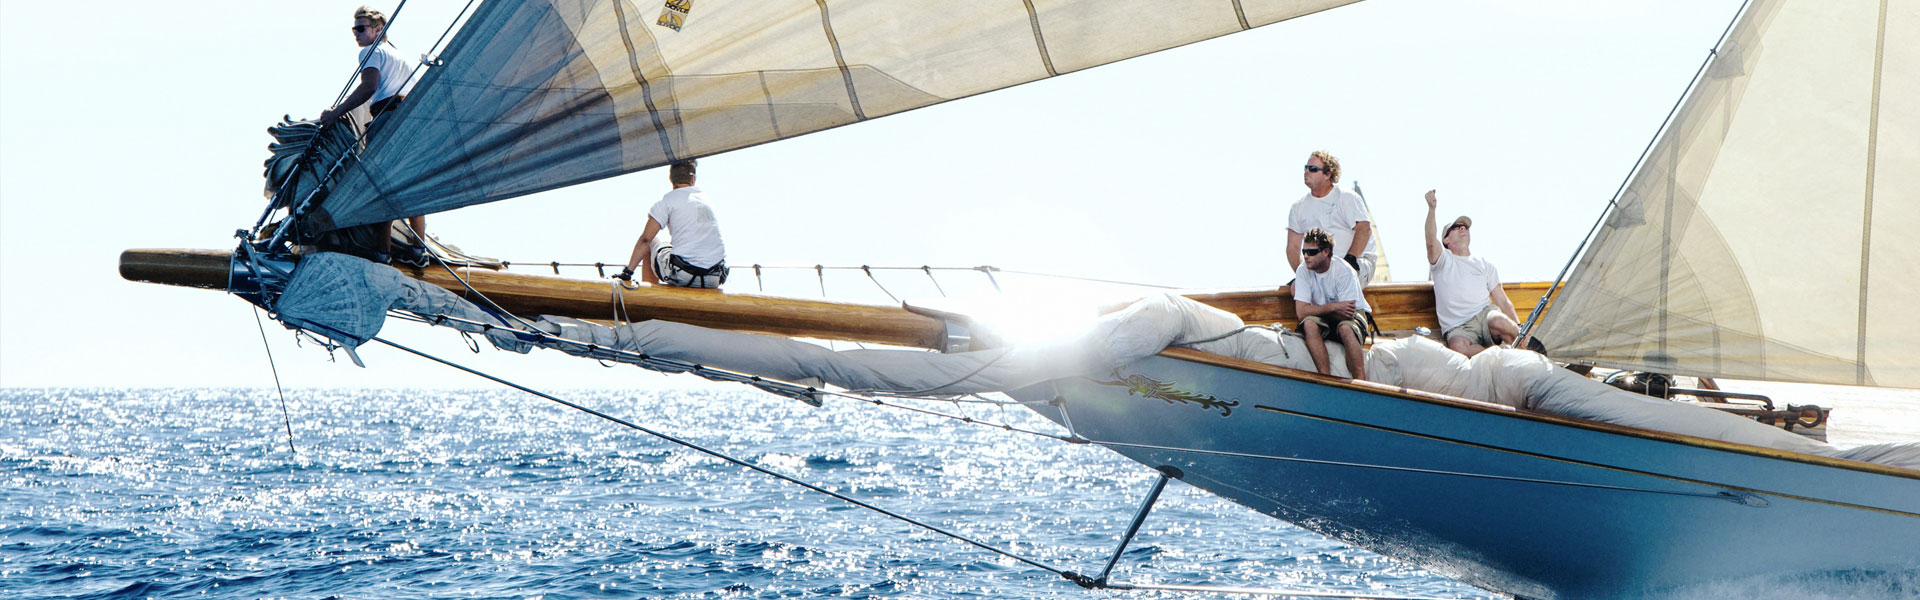 Elite-Yachting-Slide-1